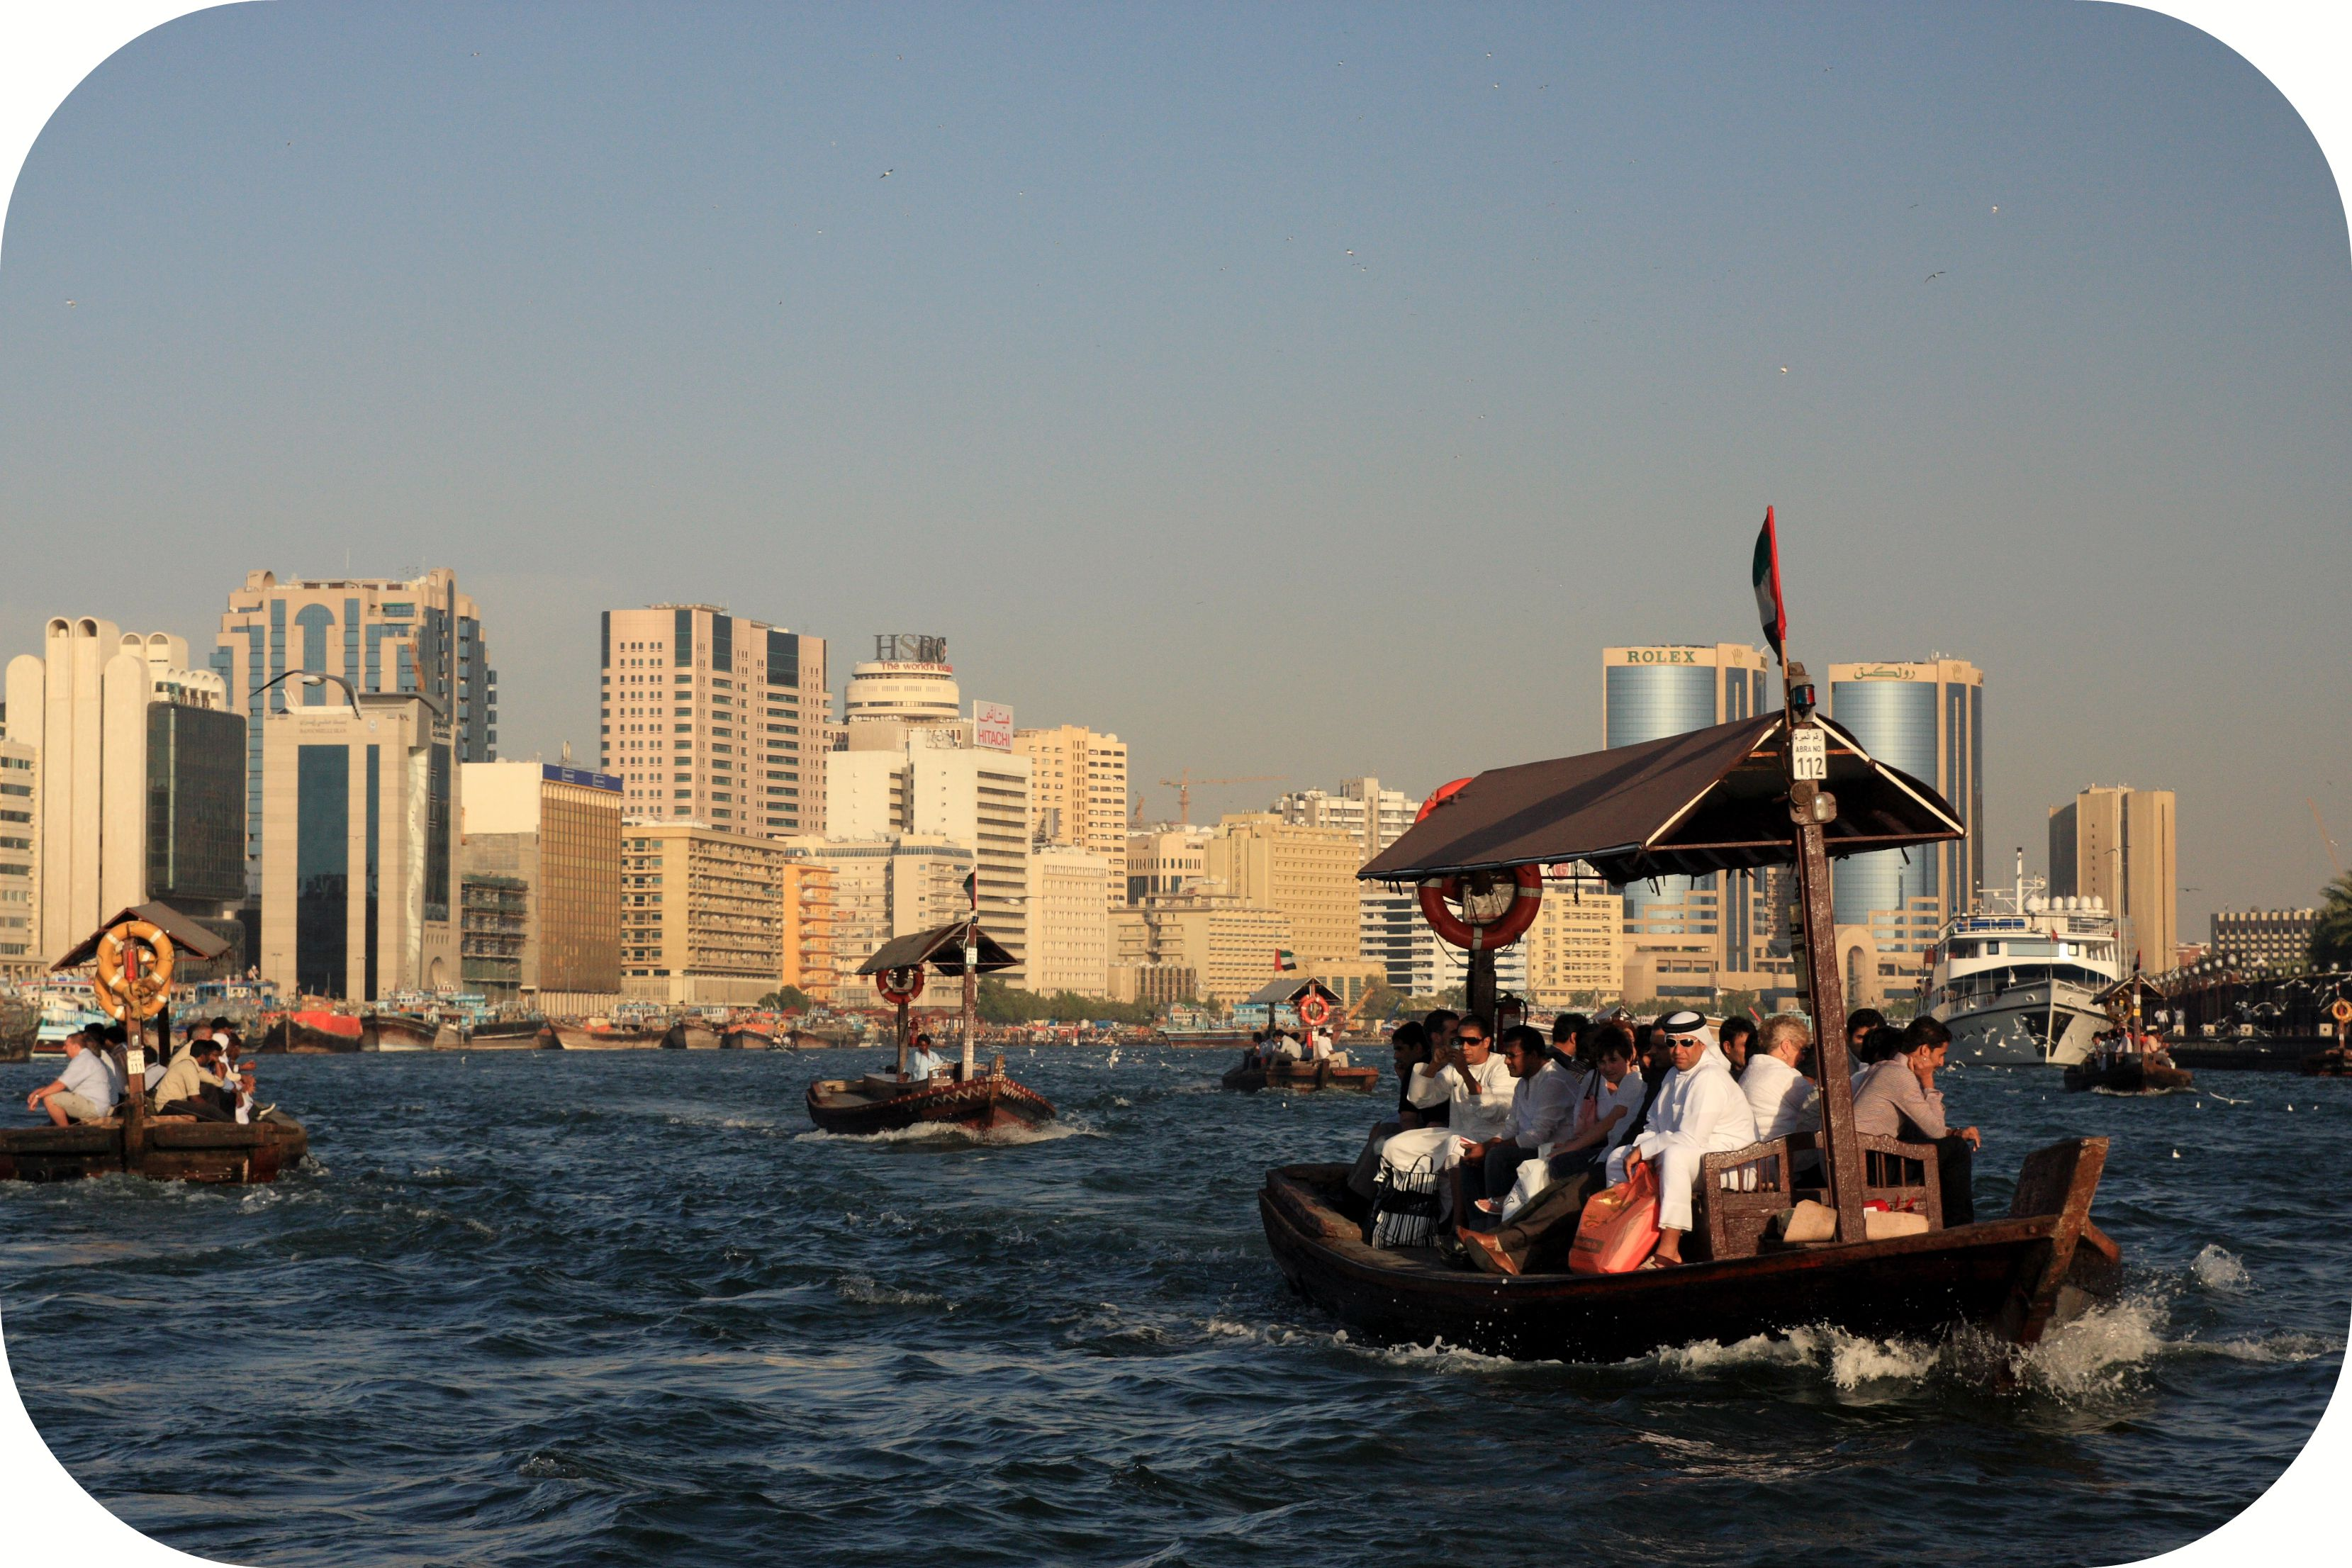 Dubai_Creek_UAE_4325886562